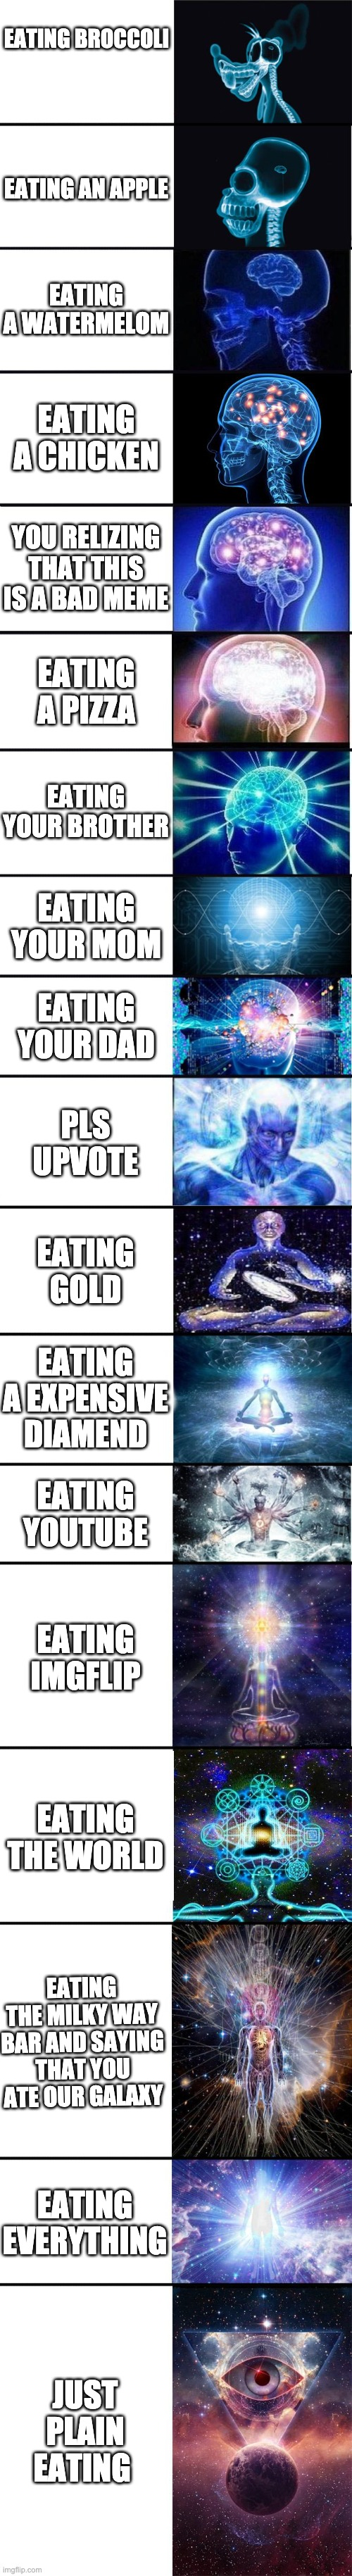 expanding brain: 9001 |  EATING BROCCOLI; EATING AN APPLE; EATING A WATERMELOM; EATING A CHICKEN; YOU RELIZING THAT THIS IS A BAD MEME; EATING A PIZZA; EATING YOUR BROTHER; EATING YOUR MOM; EATING YOUR DAD; PLS UPVOTE; EATING GOLD; EATING A EXPENSIVE DIAMEND; EATING YOUTUBE; EATING IMGFLIP; EATING THE WORLD; EATING THE MILKY WAY BAR AND SAYING THAT YOU ATE OUR GALAXY; EATING EVERYTHING; JUST PLAIN EATING | image tagged in expanding brain 9001 | made w/ Imgflip meme maker